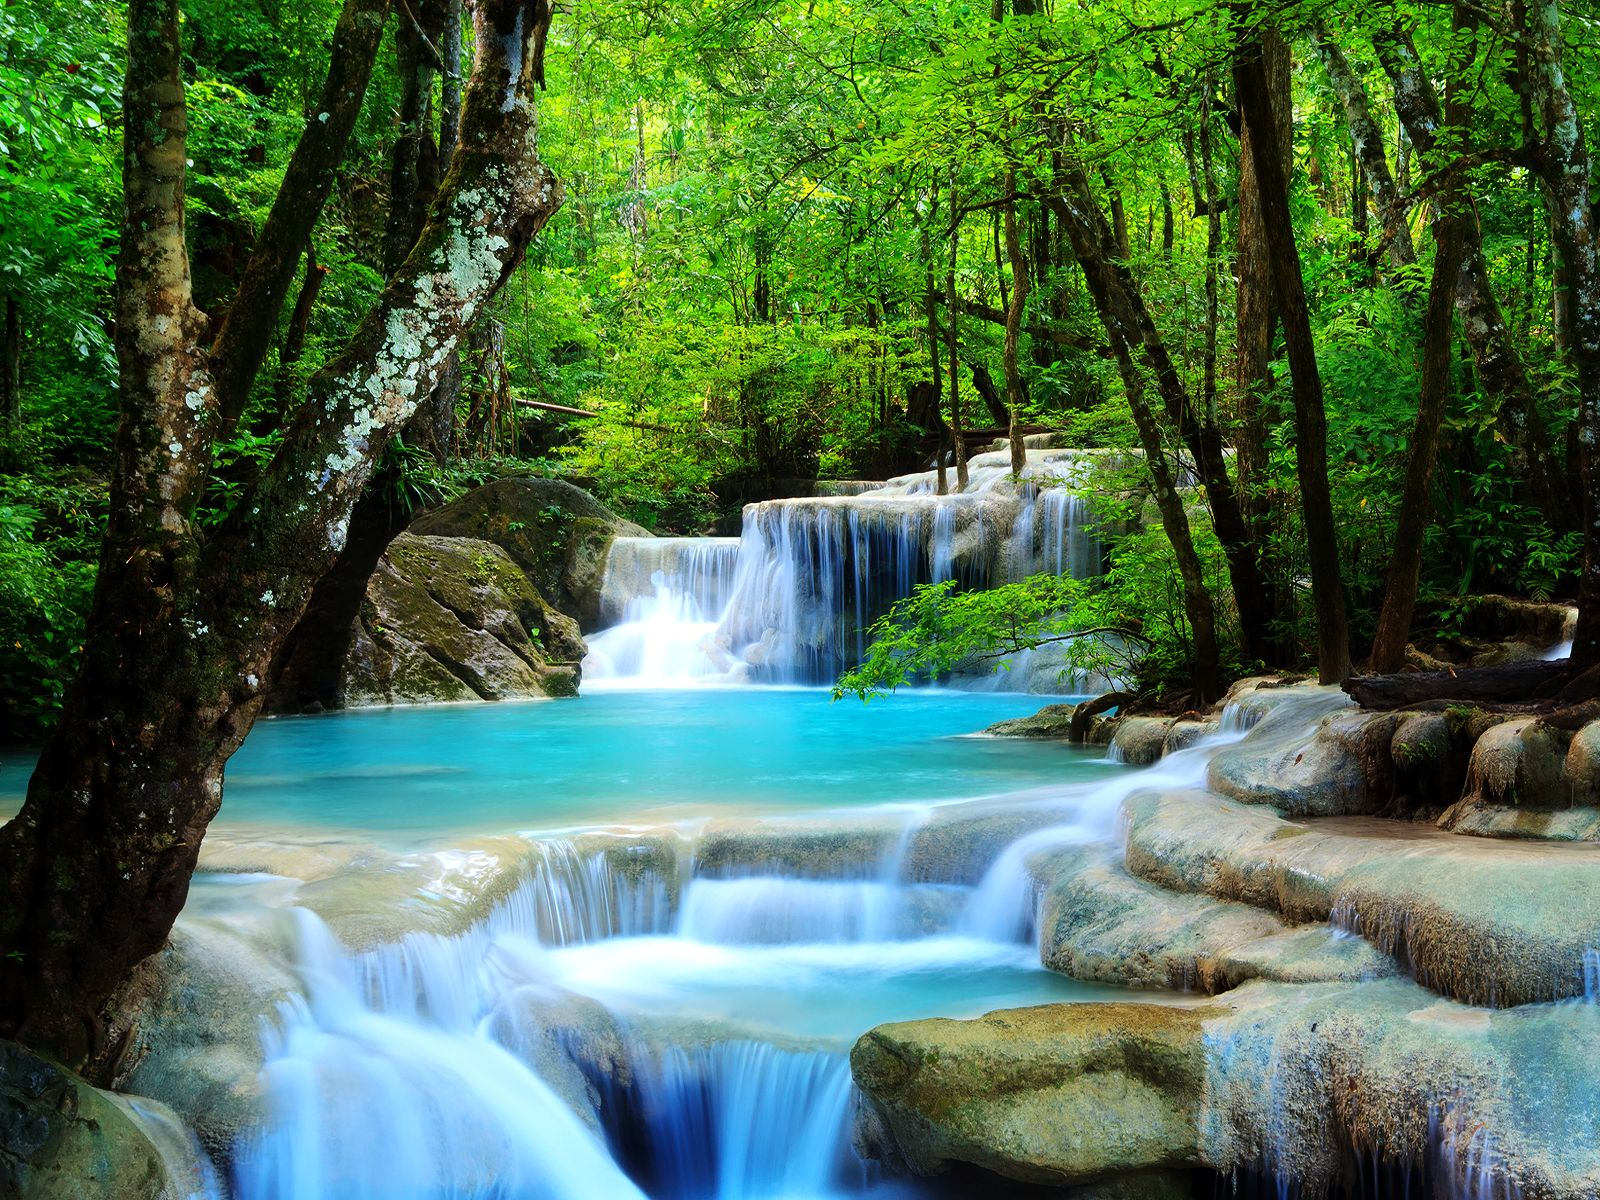 Beautiful-Waterfall. Rainforest Waterfall Wallpaper 01